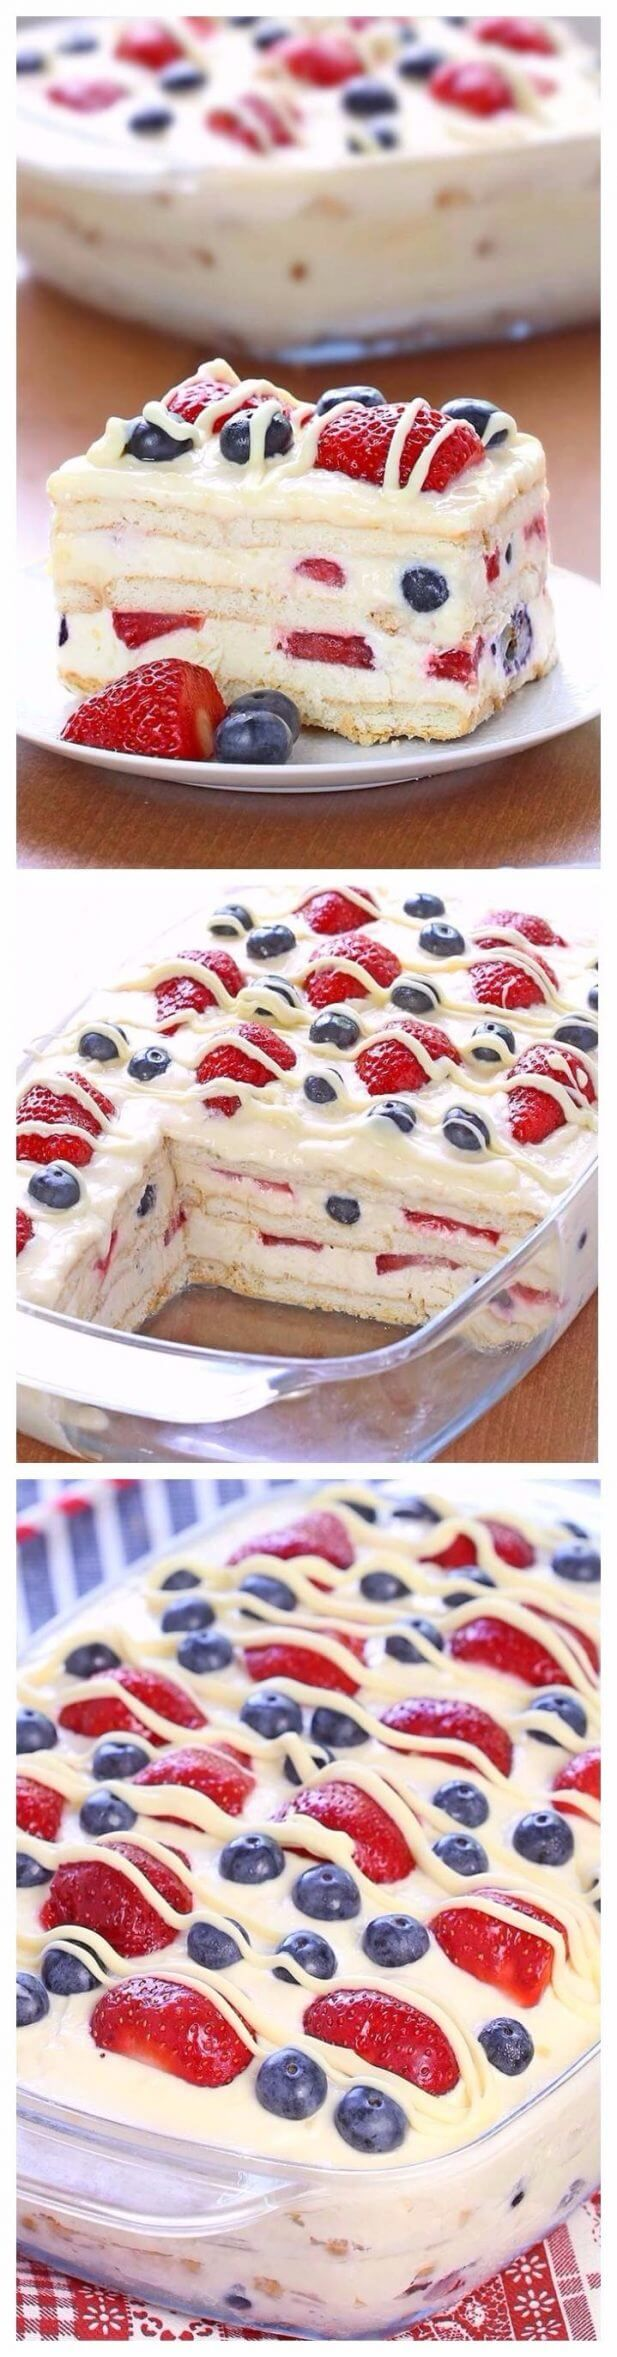 No Bake Summer Berry Icebox Cake | Tasty Food Collection